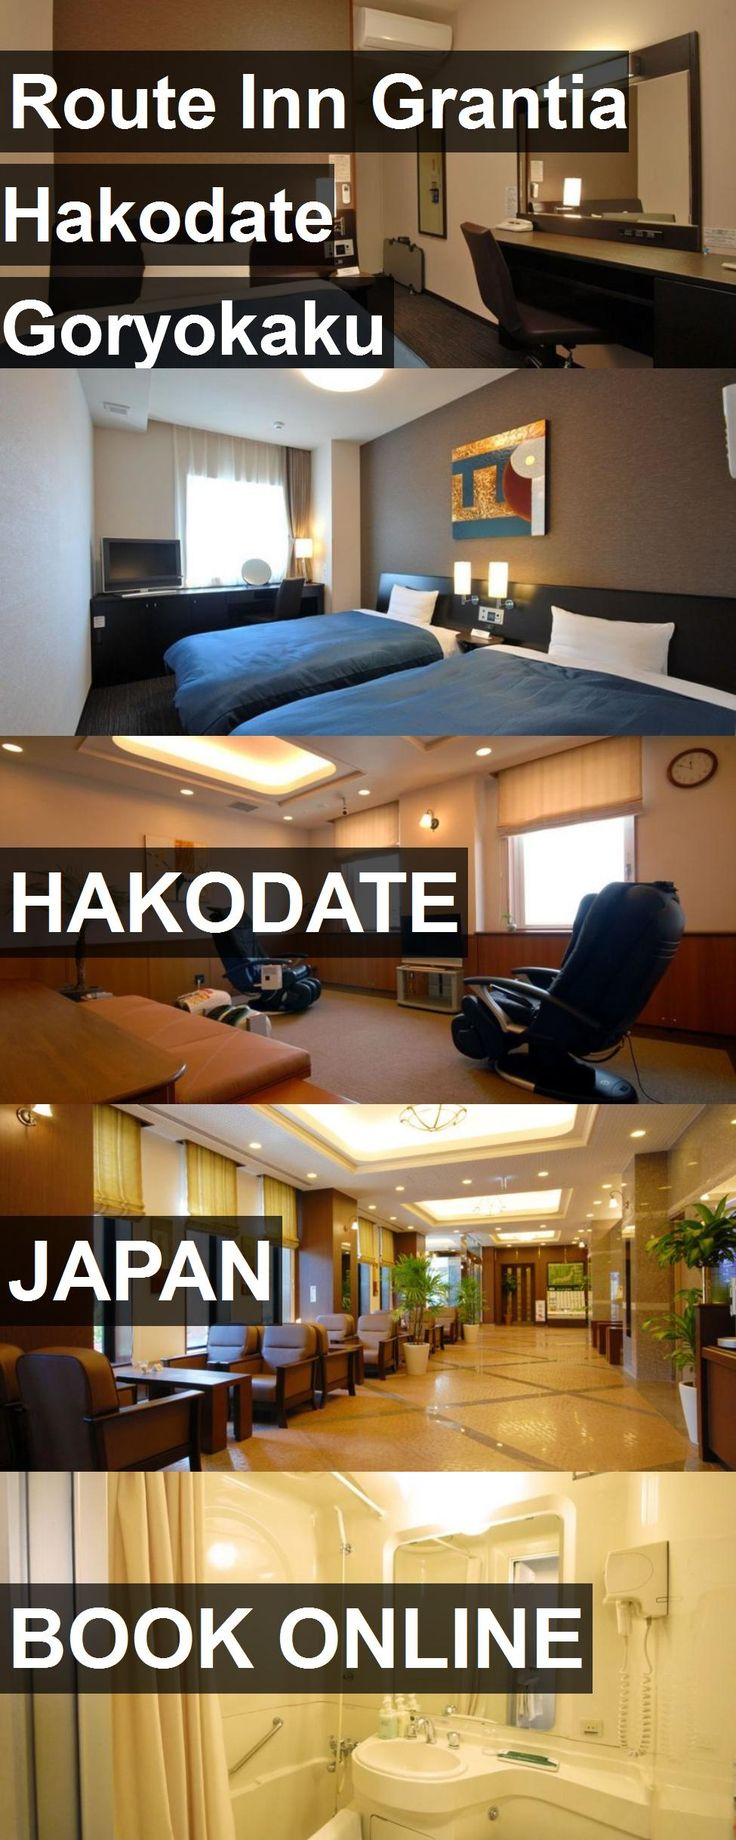 Hotel Route Inn Grantia Hakodate Goryokaku in Hakodate, Japan. For more information, photos, reviews and best prices please follow the link. #Japan #Hakodate #travel #vacation #hotel